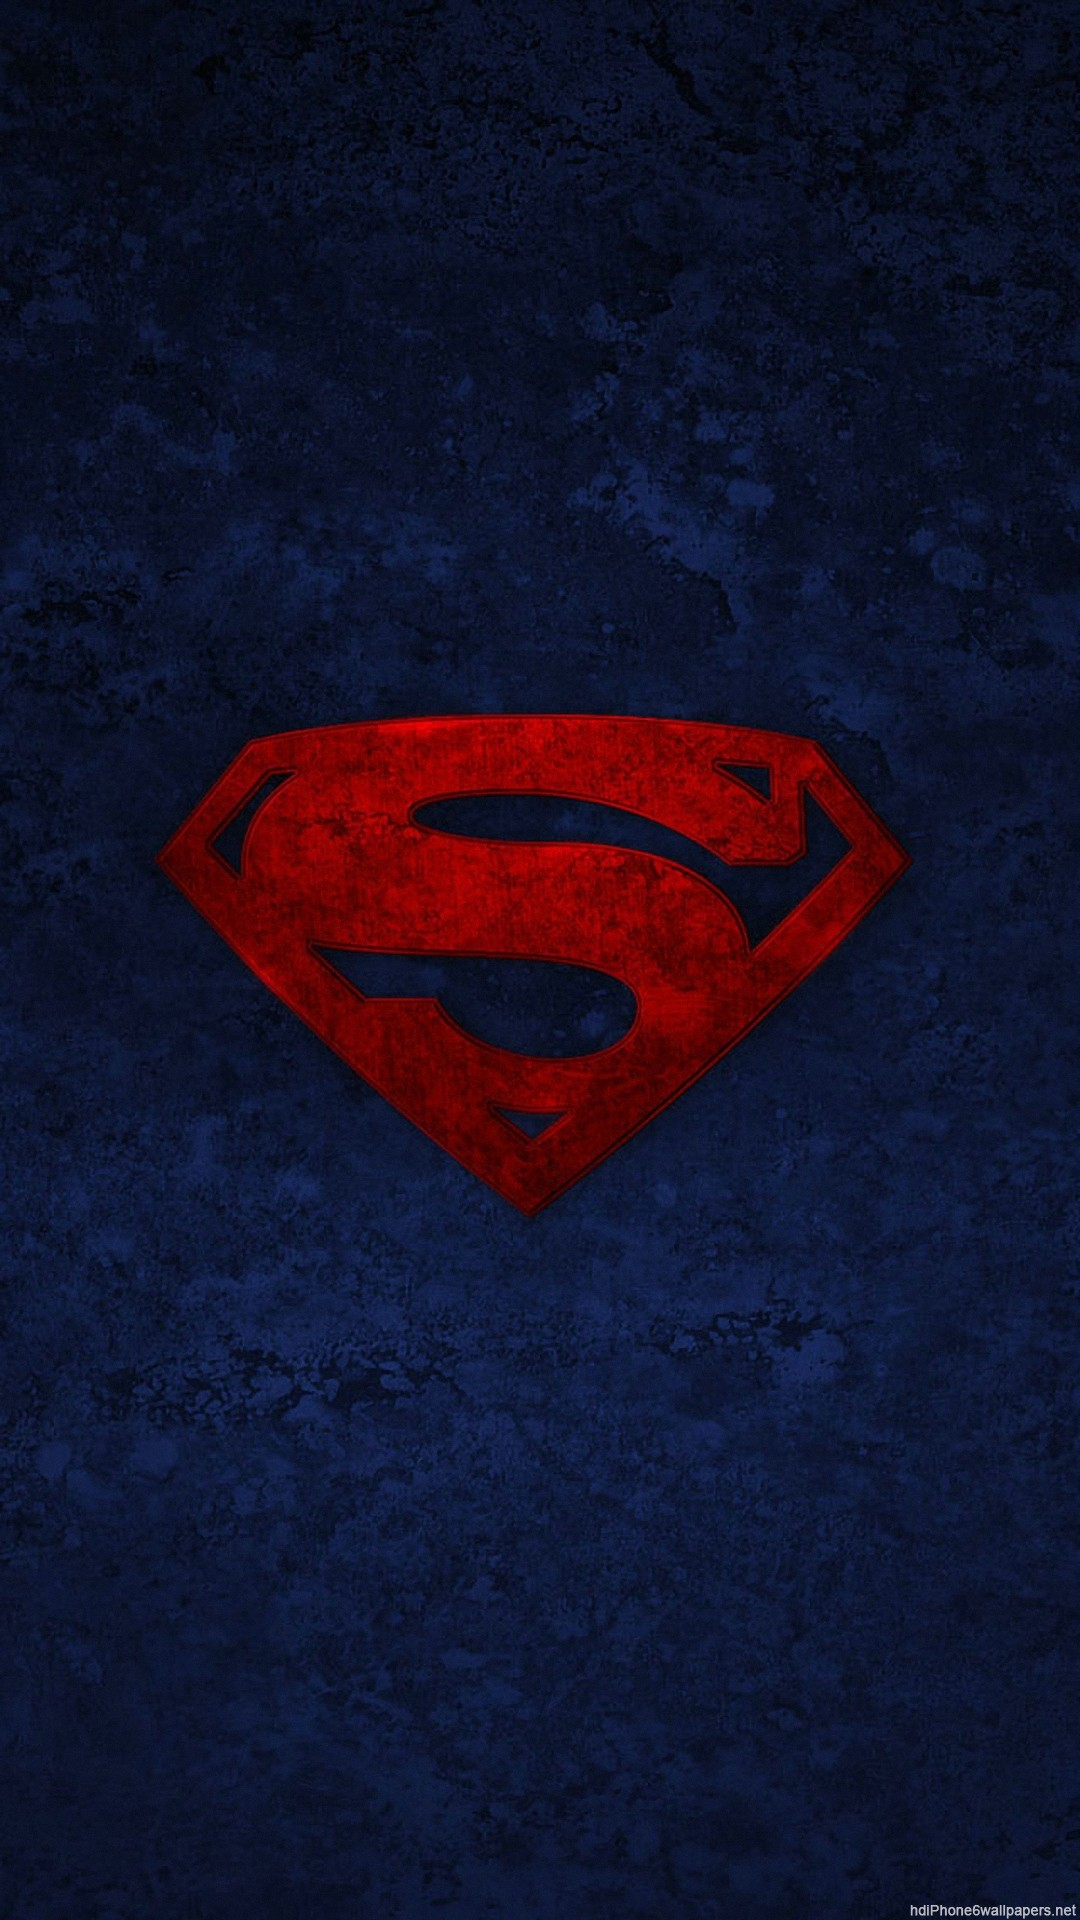 IPhone 6 Wallpaper HD  90  images  1080x1920 HD Superman logo iphone 6 wallpaper